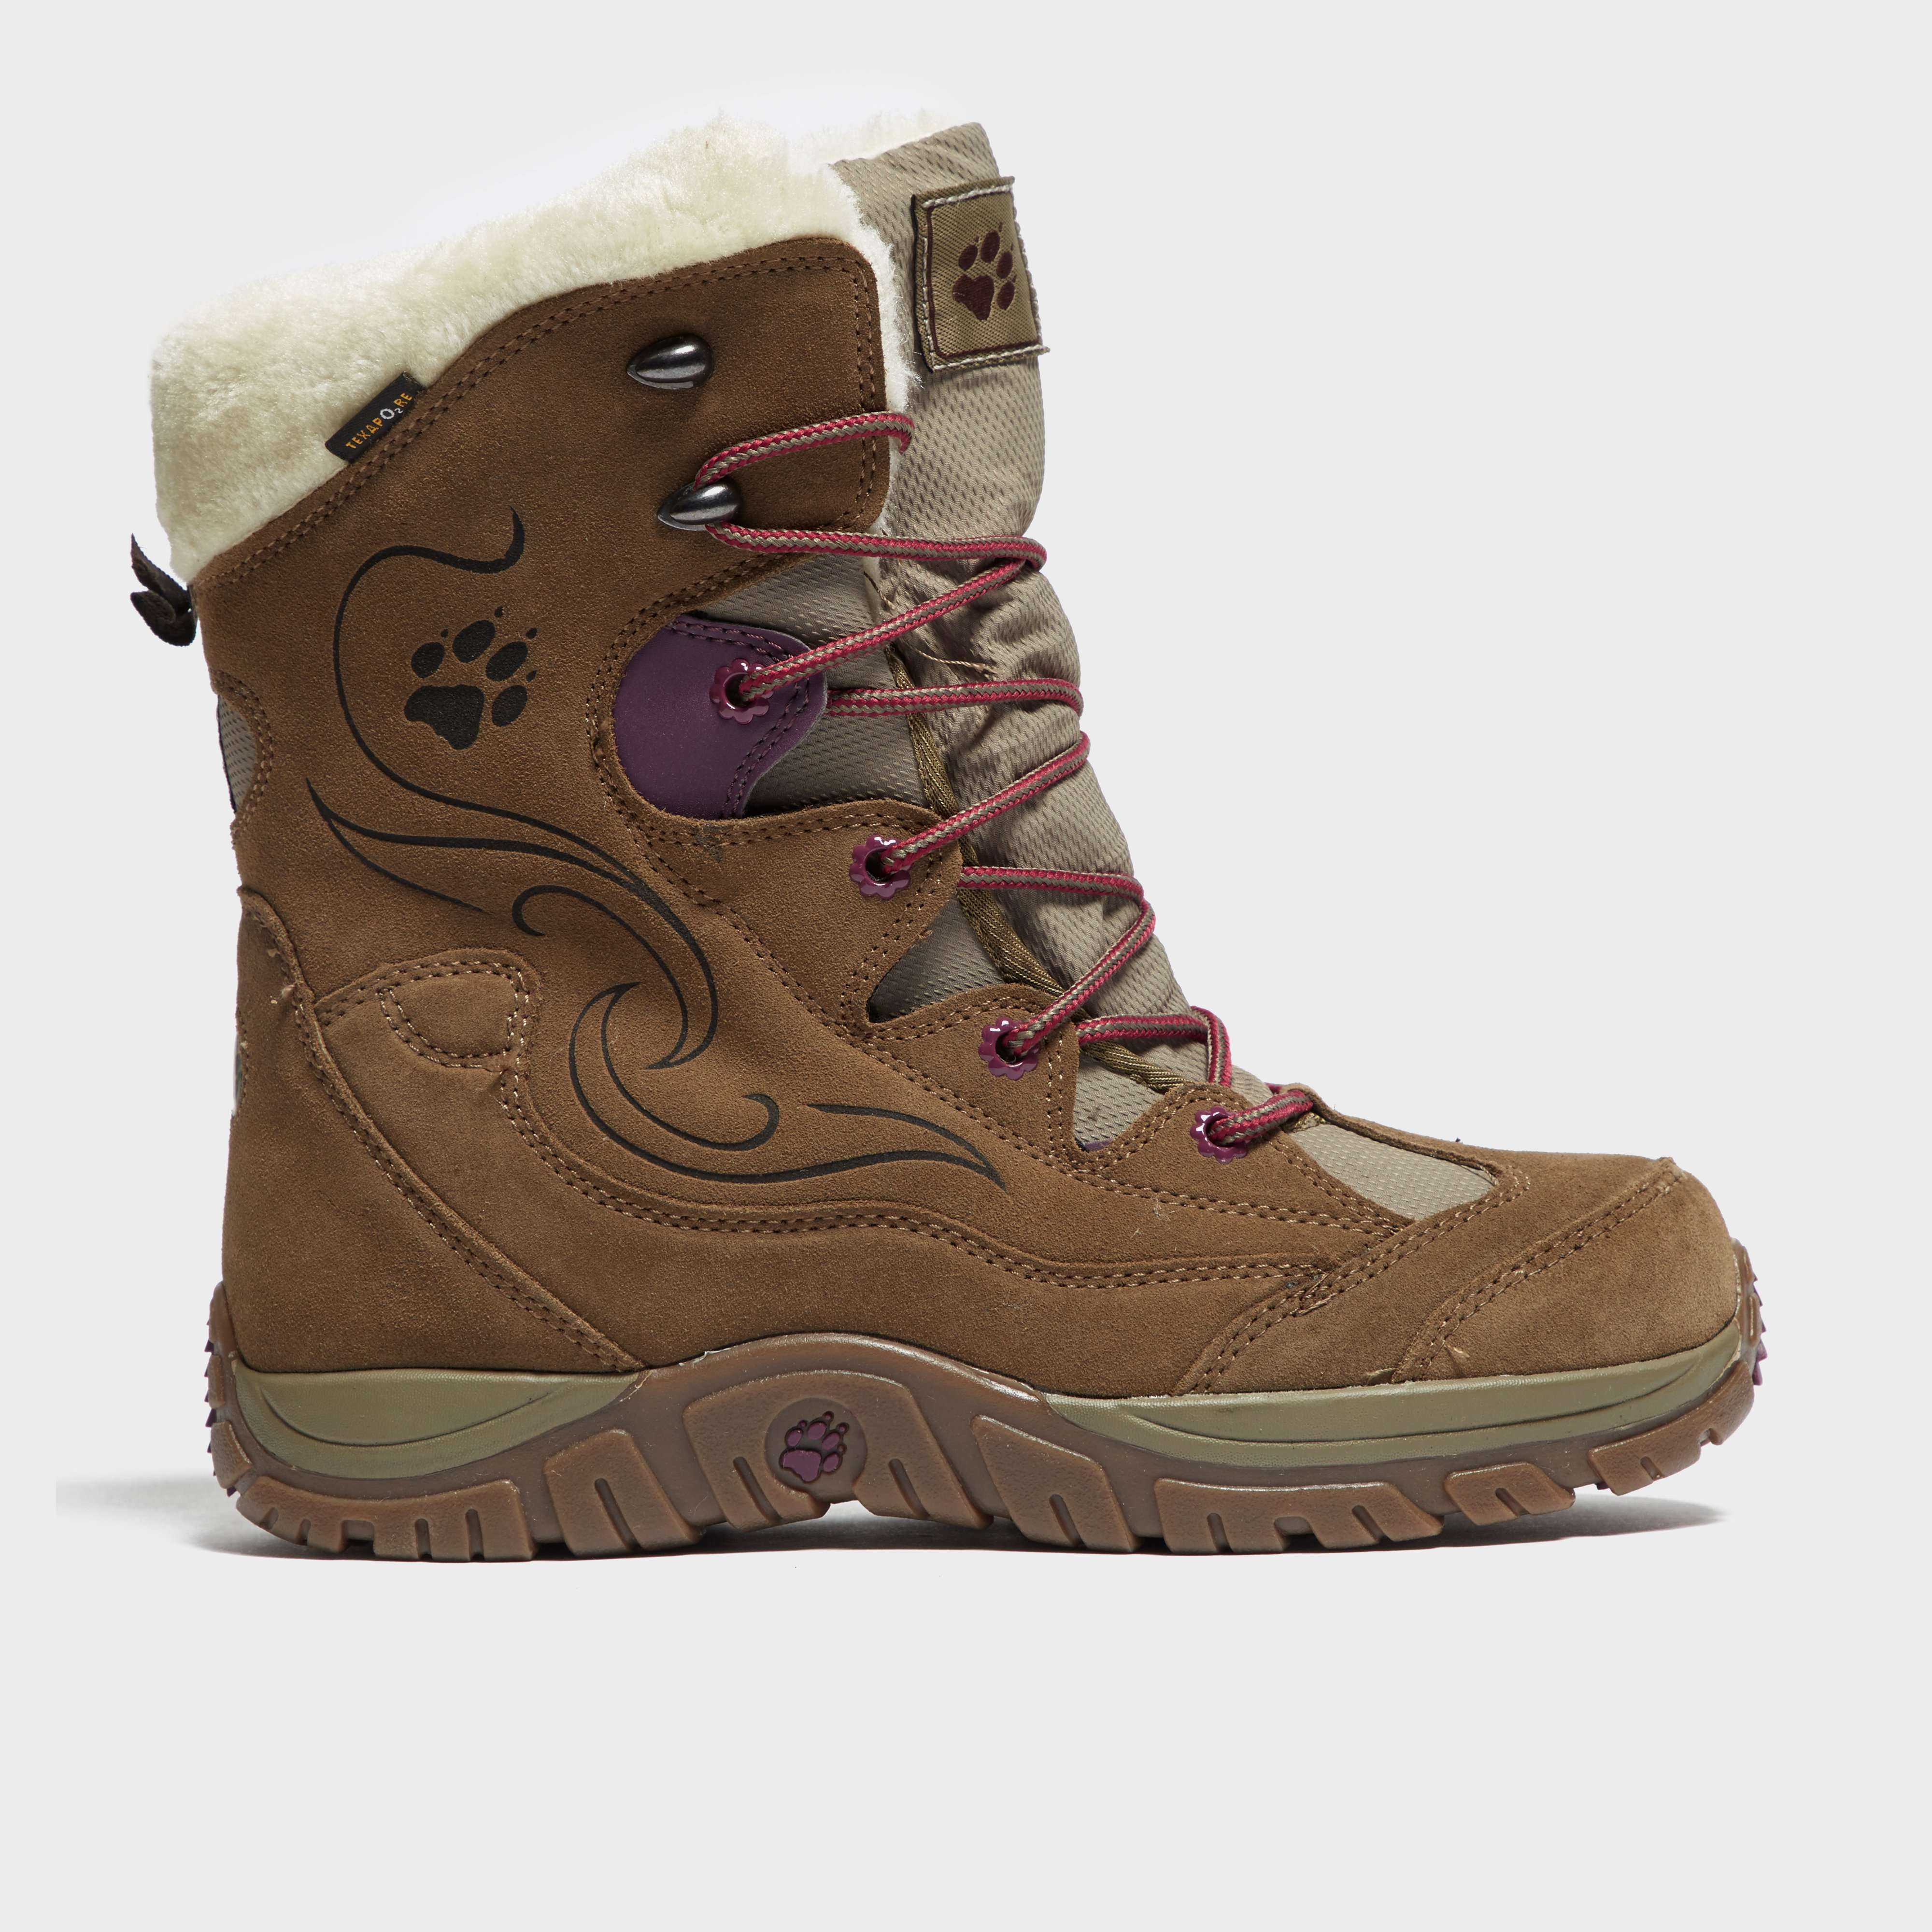 JACK WOLFSKIN Girl's Lake Tahoe Texapore Snow Boots